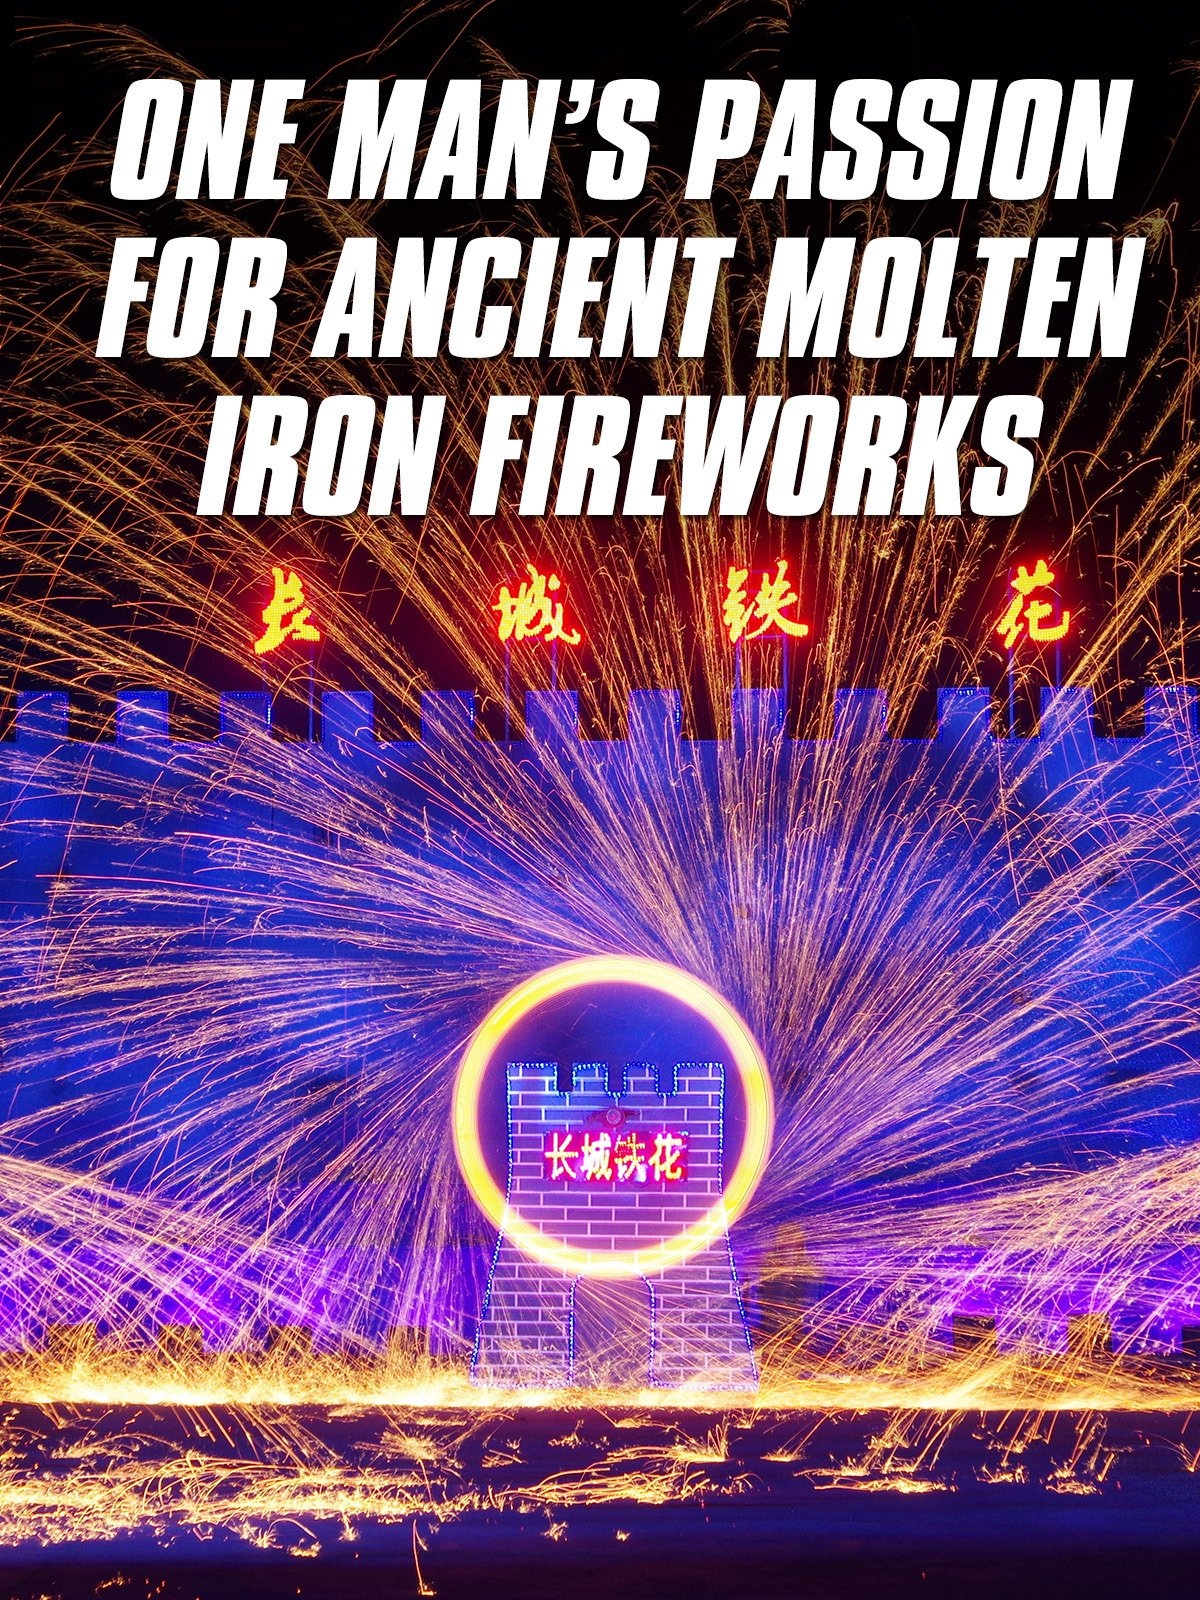 One Man's Passion for Ancient Molten Iron Fireworks